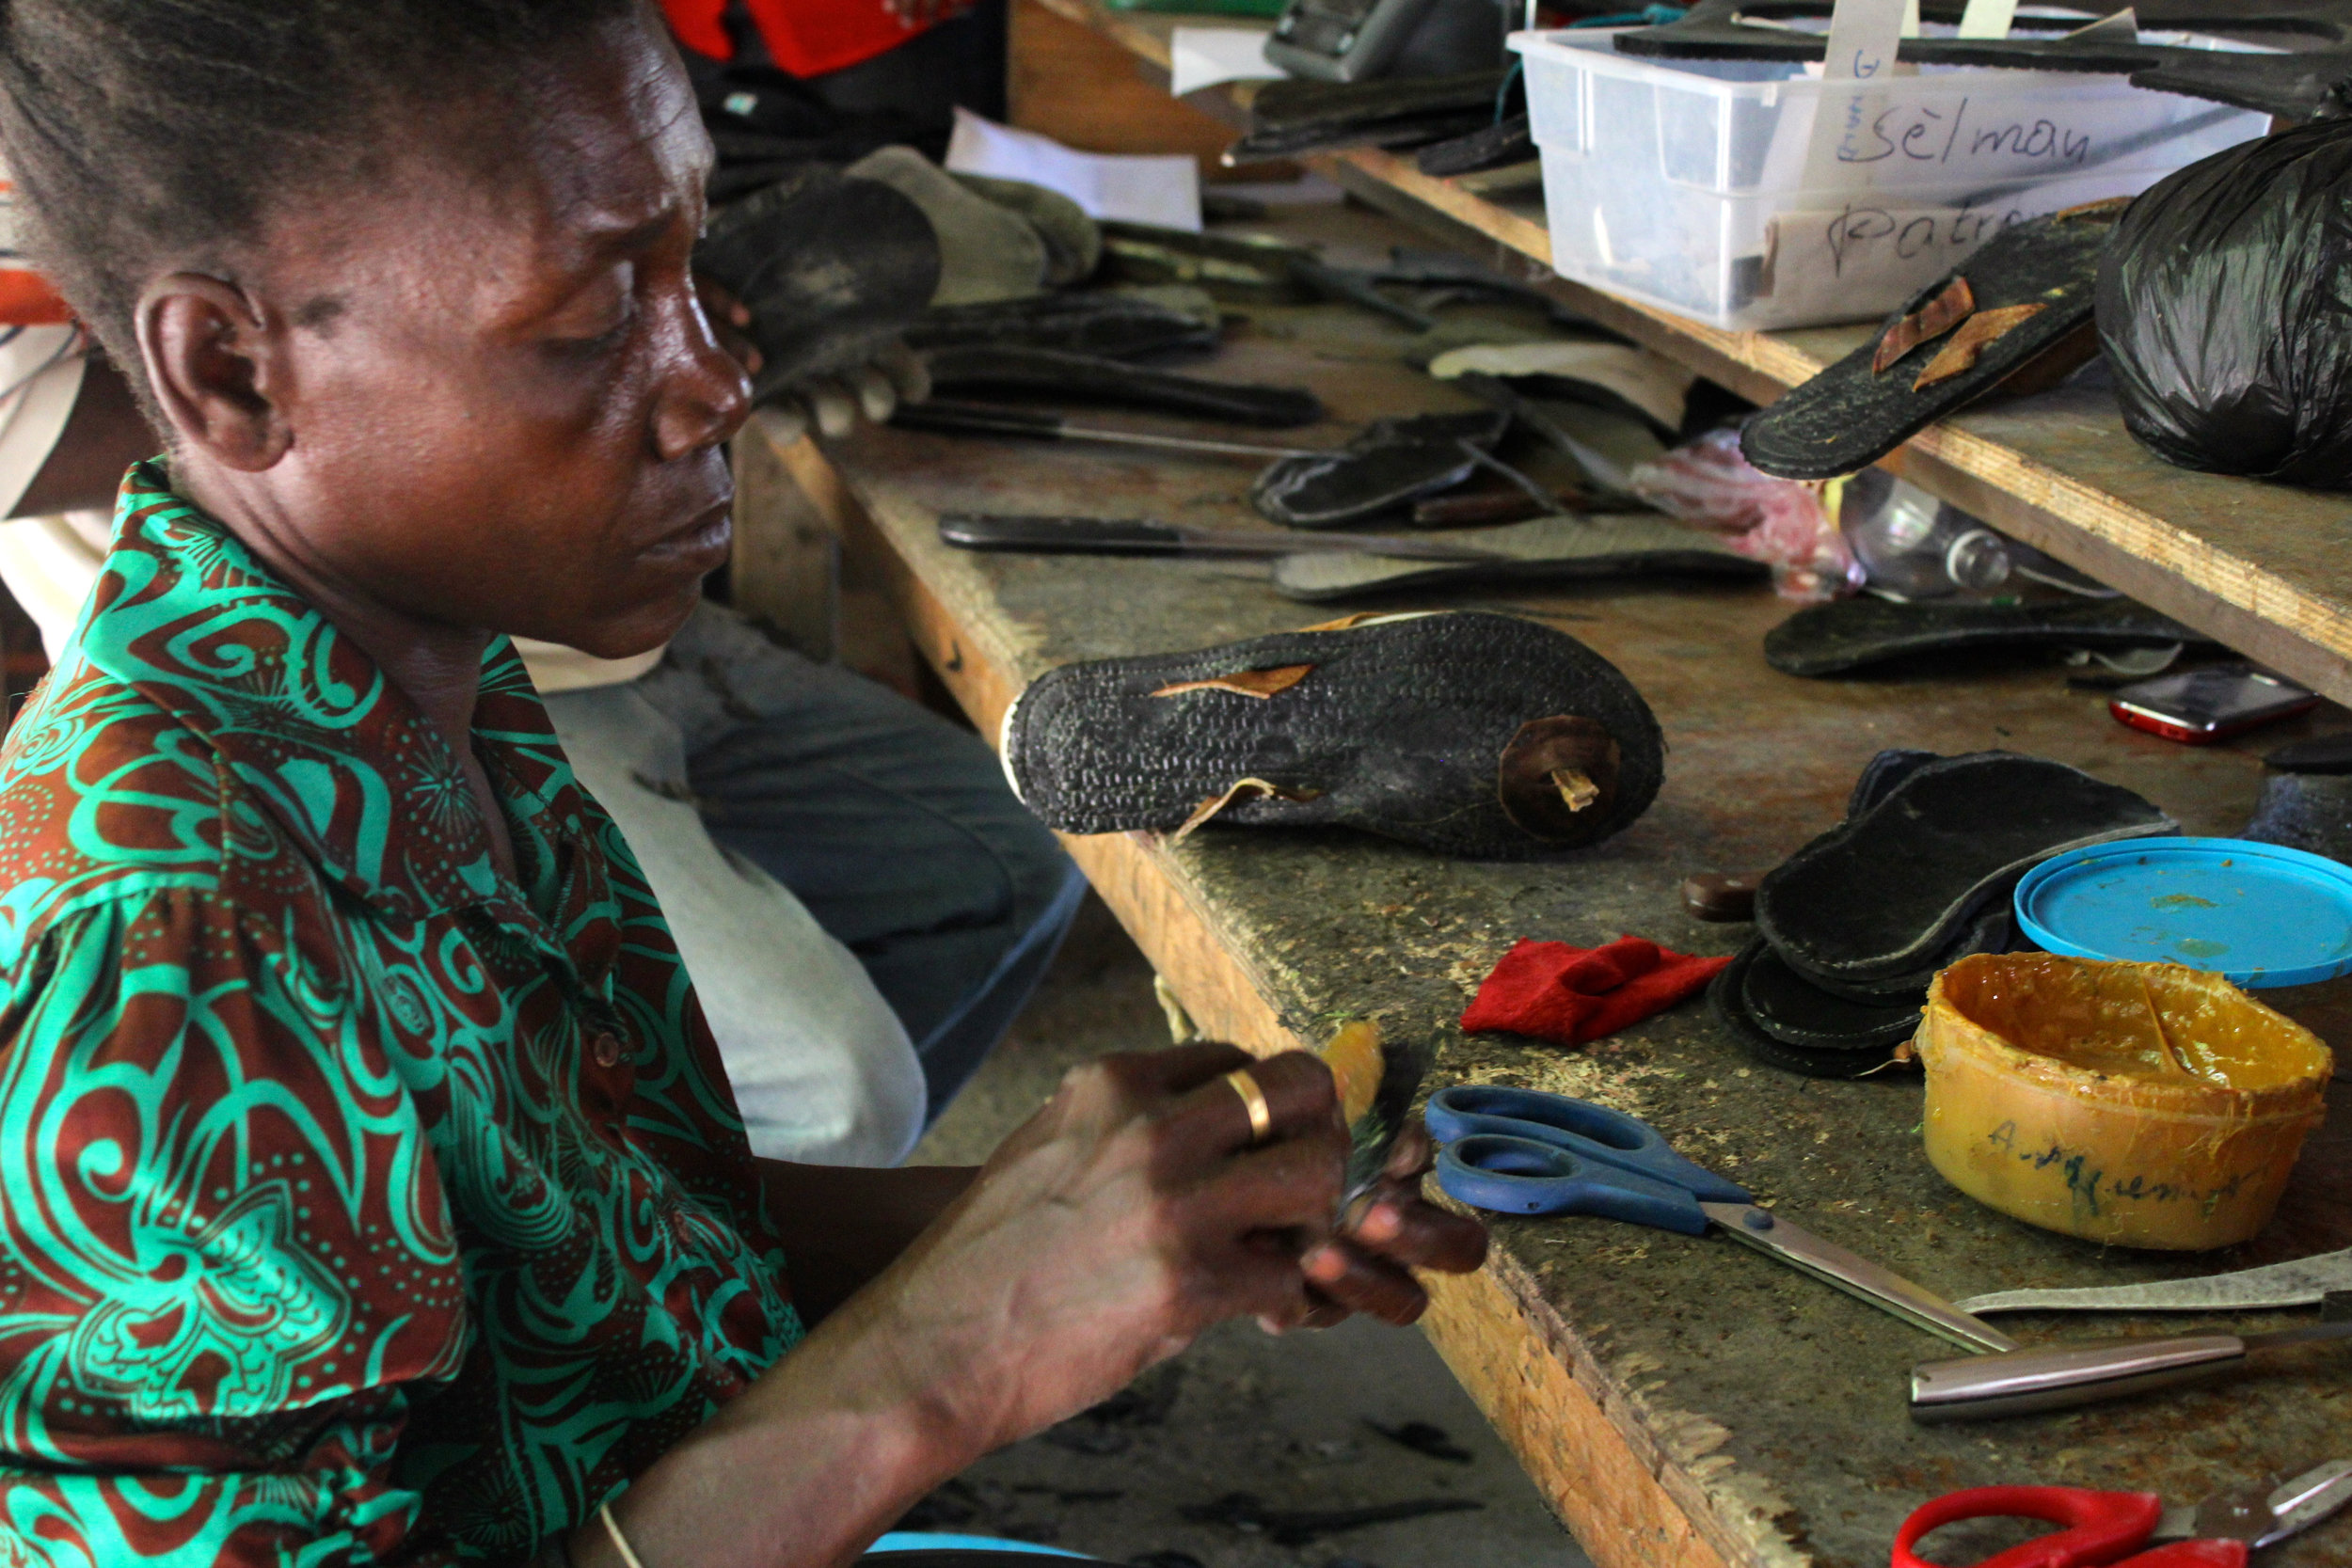 The sandals are being glued together. Photo: A Bergamin